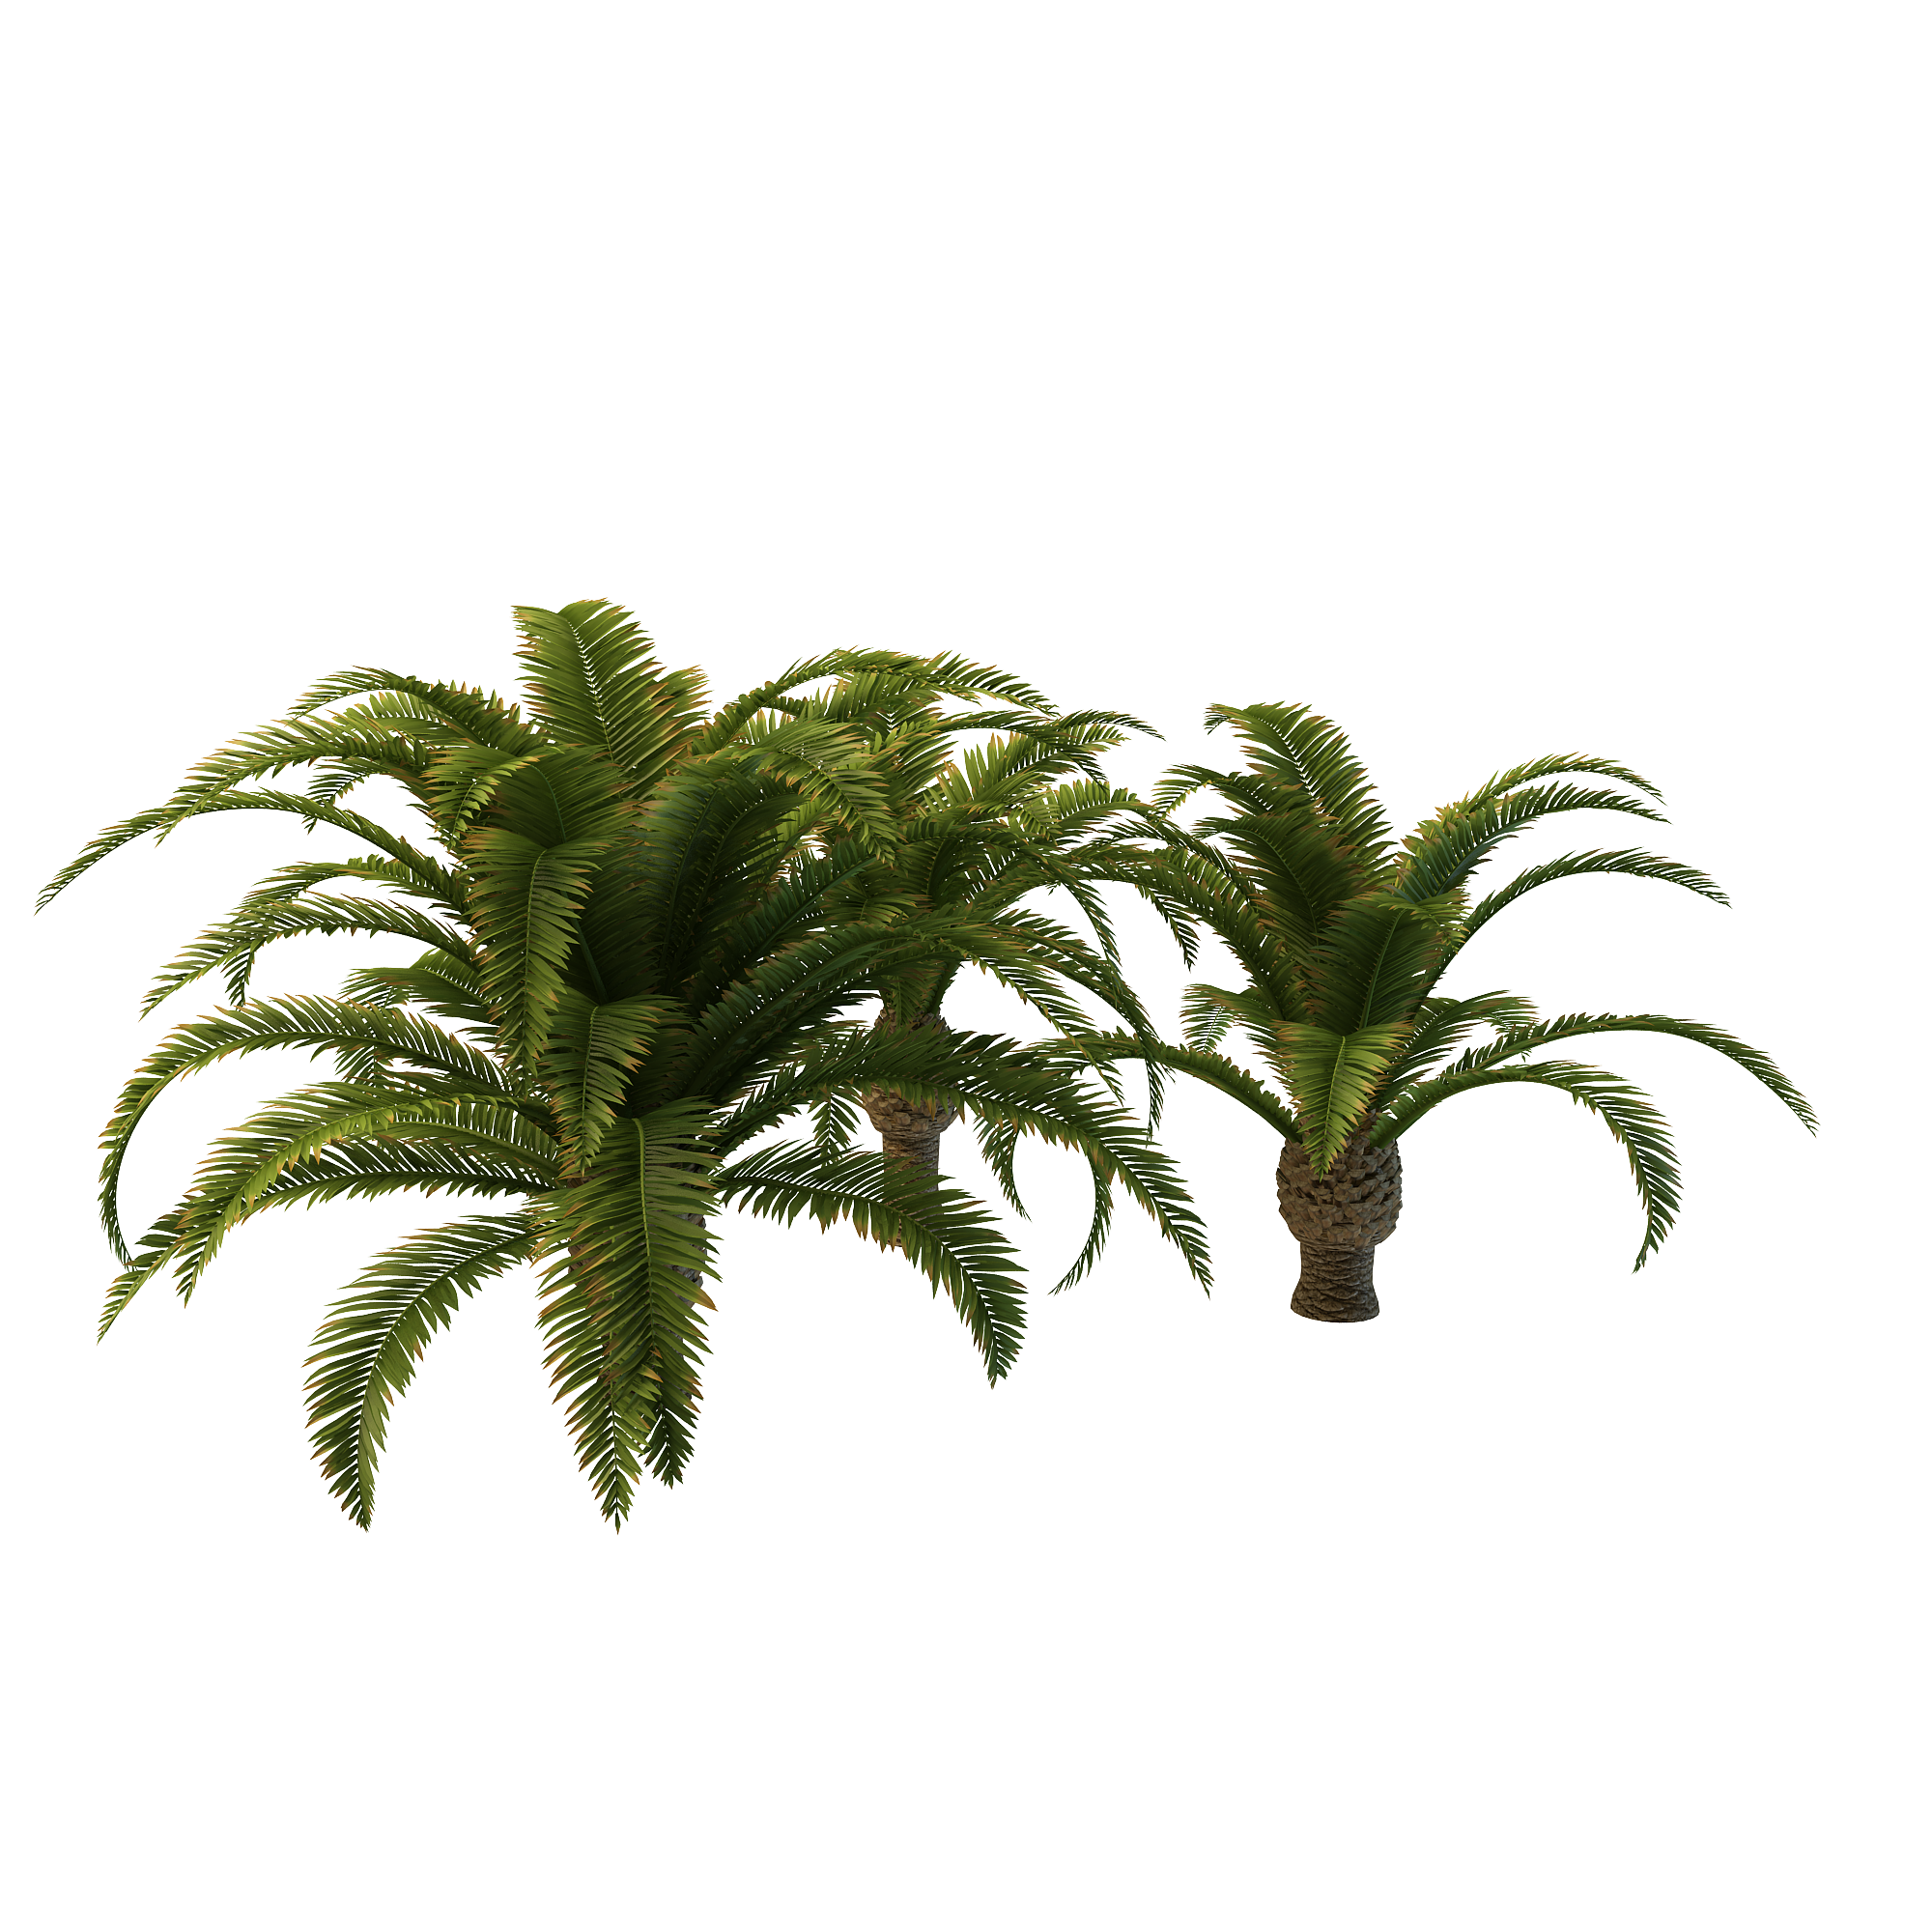 Long Palm Tree Clipart Png image #43079